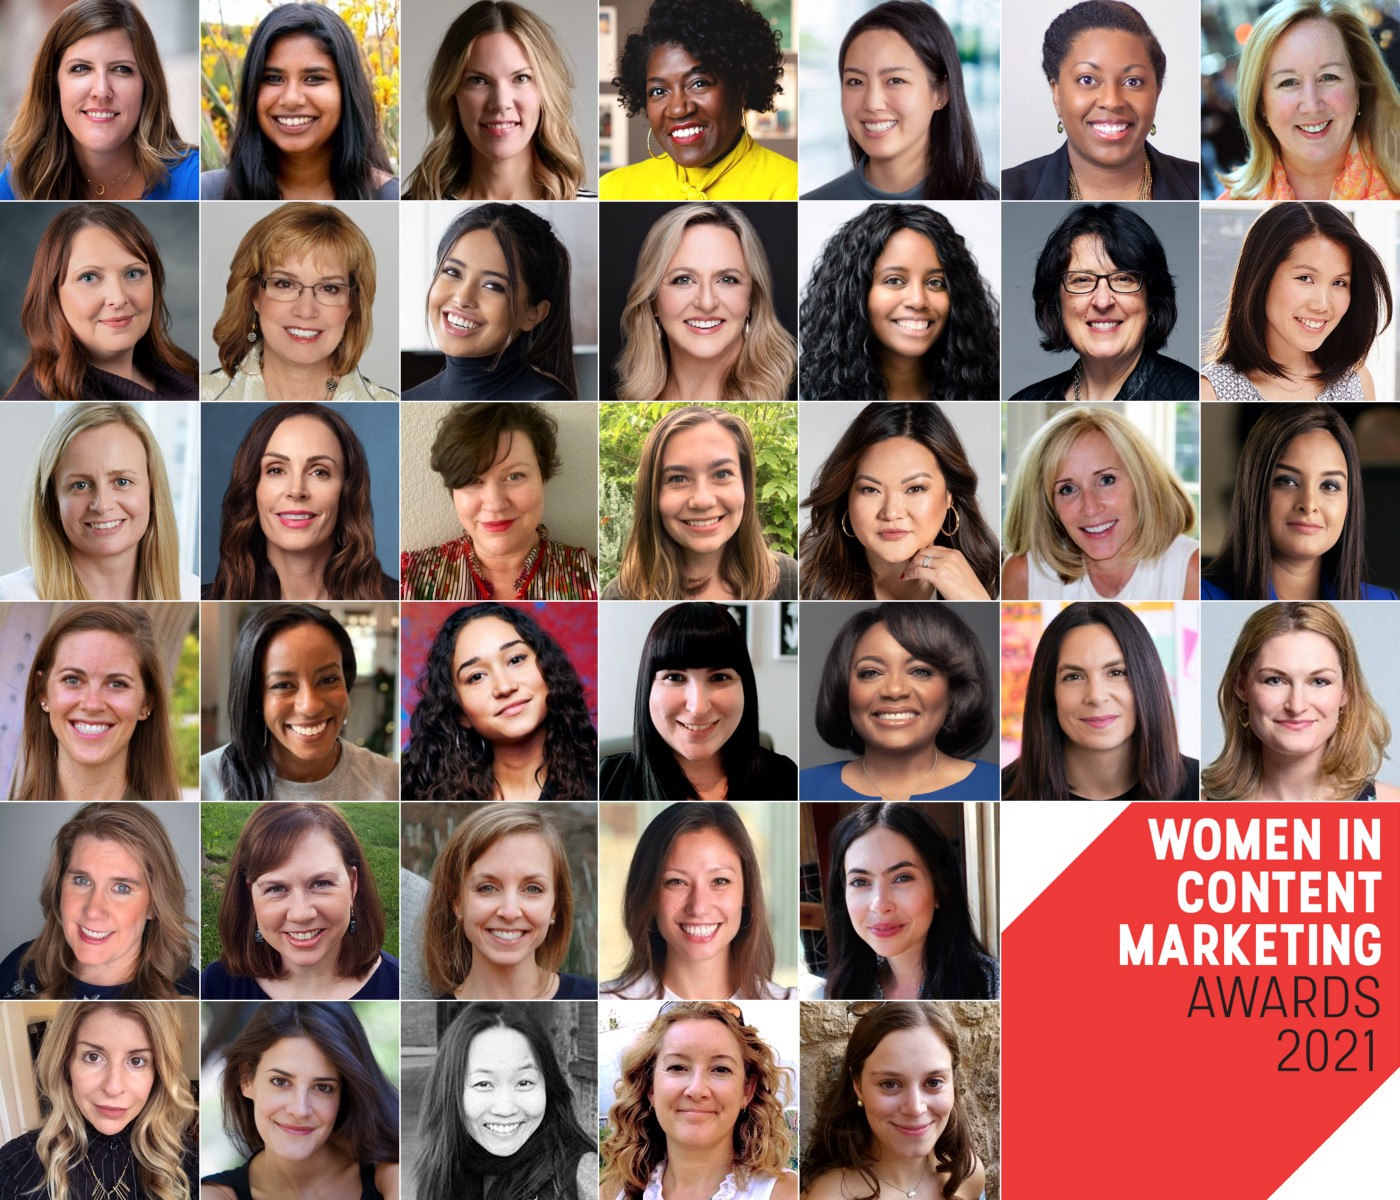 Photos of the finalists of the Women in Content Marketing Awards